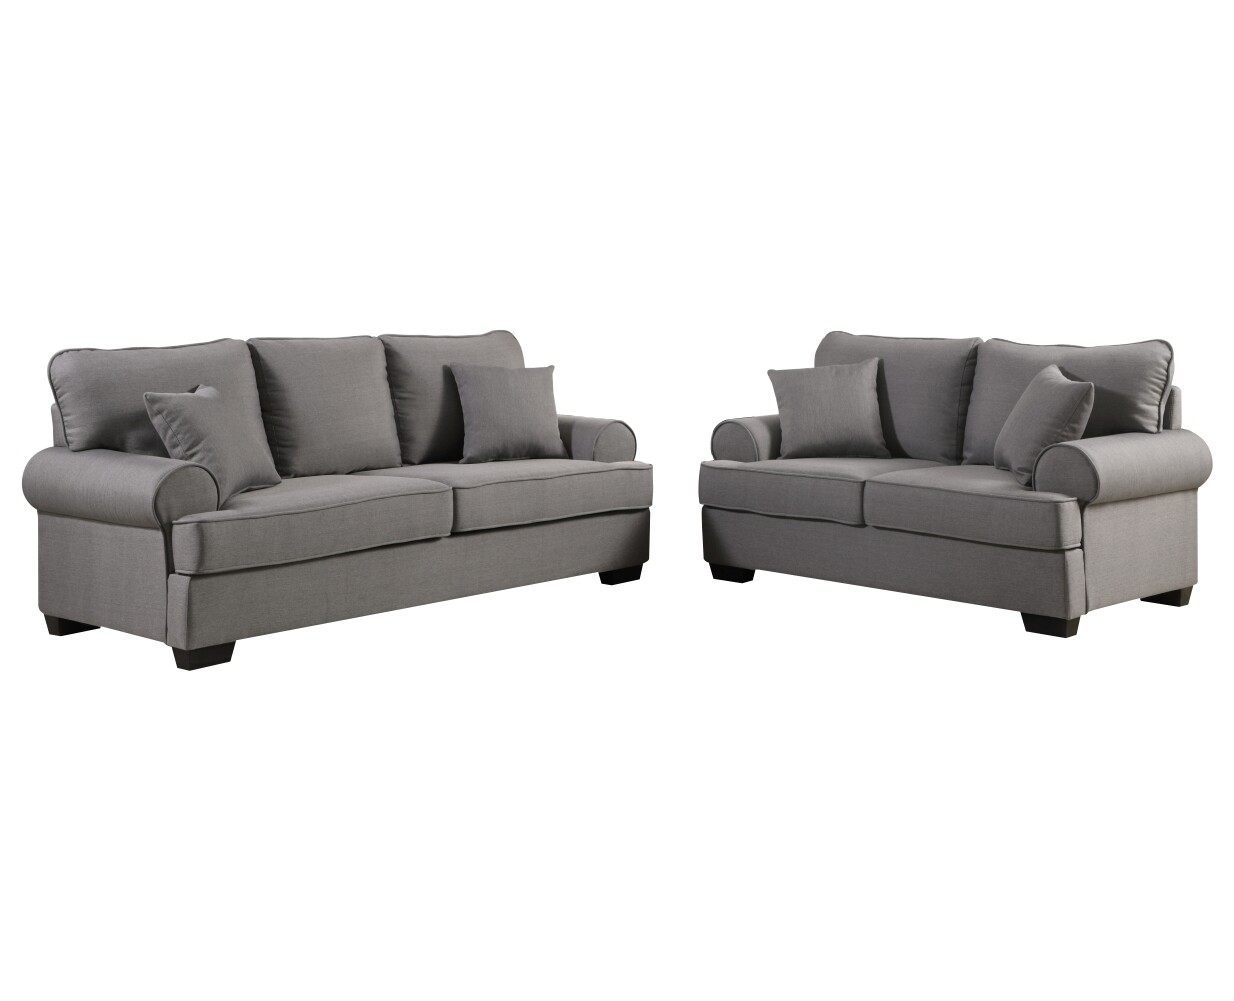 Fabric Sofa 2+3 Seater